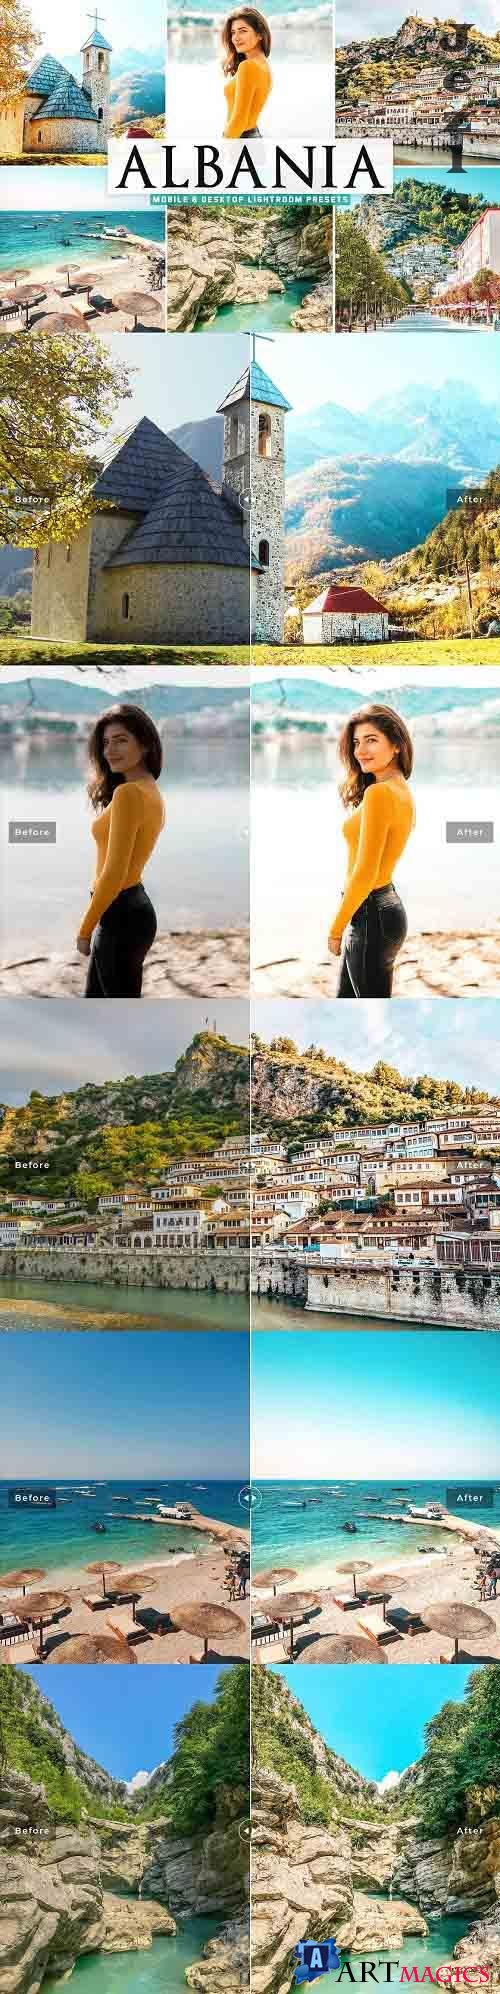 Albania Pro Lightroom Presets - 5614004 - Mobile & Desktop